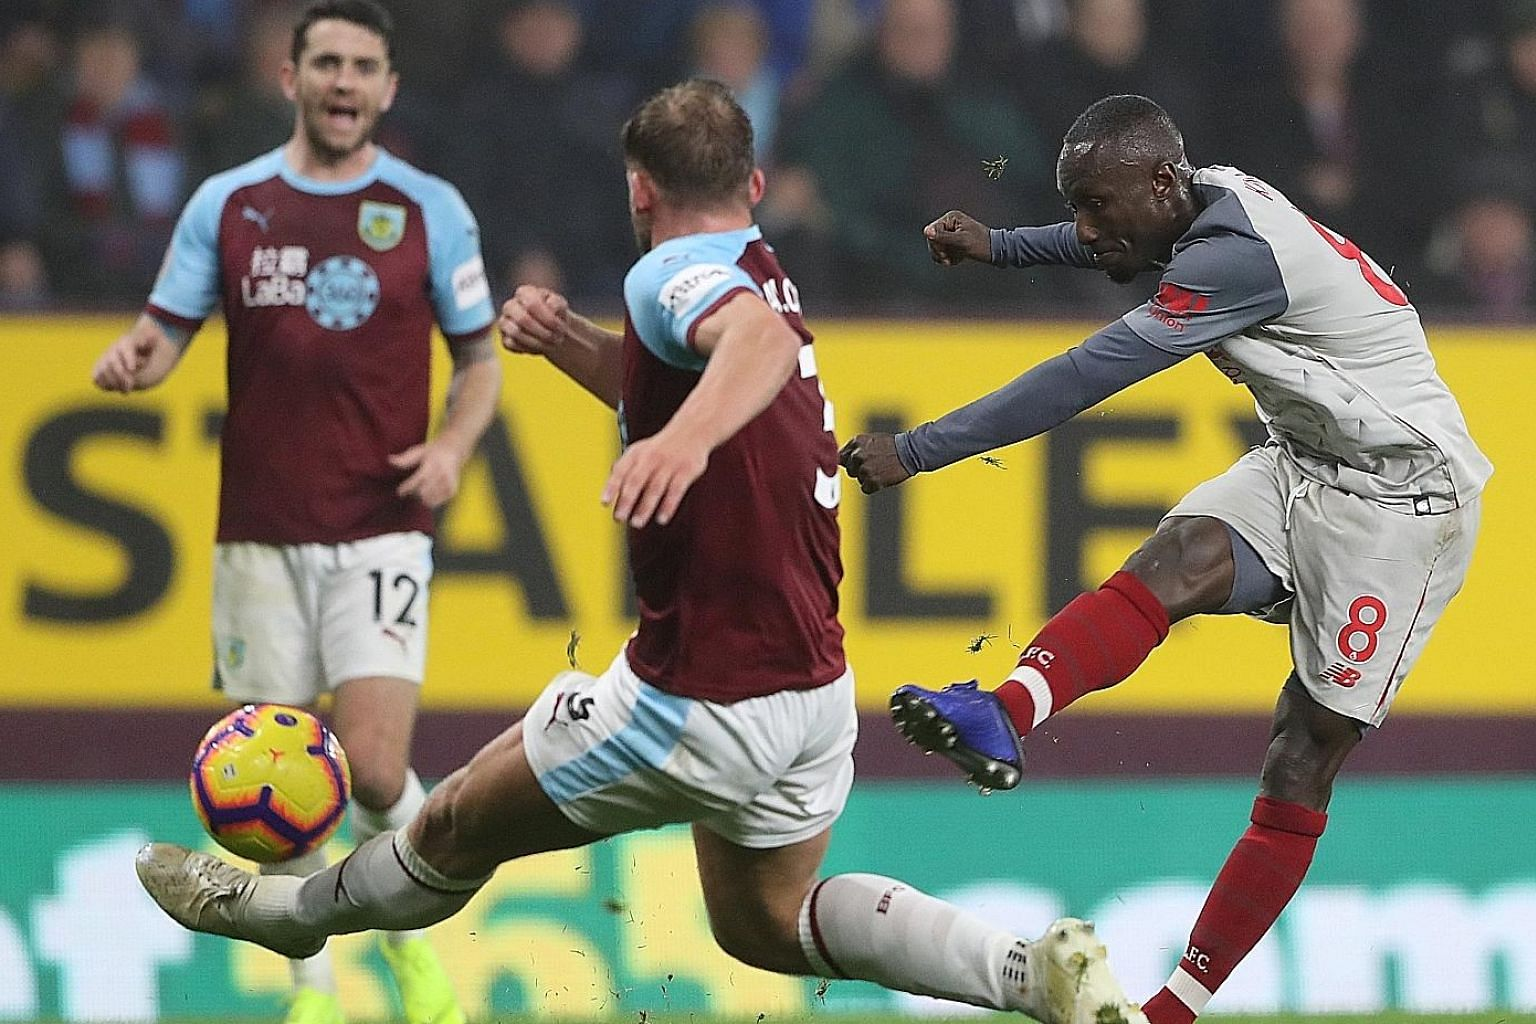 Liverpool's Naby Keita going close with a shot against Burnley in their 3-1 win on Wednesday at Turf Moor. Manager Jurgen Klopp is pleased with his work rate and creativity.